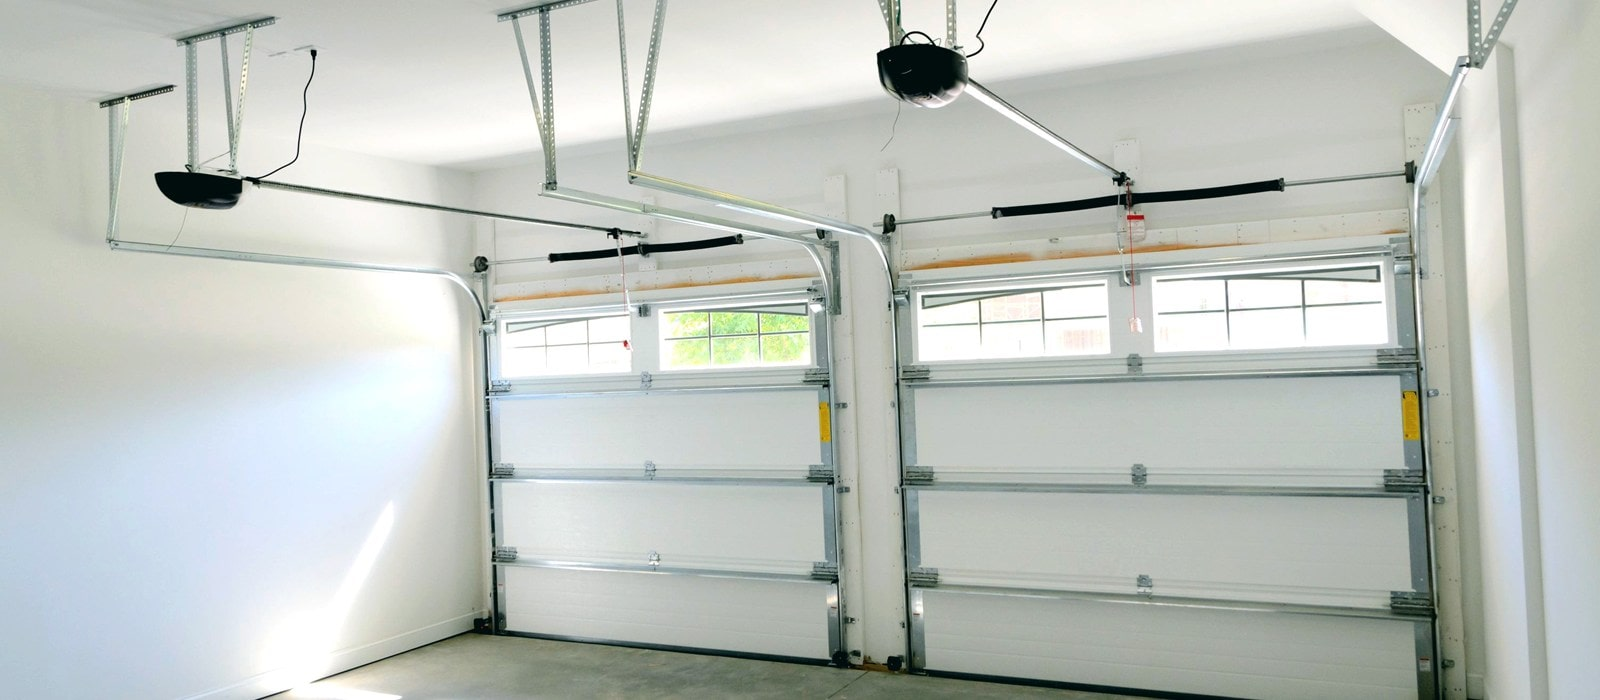 Beau Garage Door Repair Service